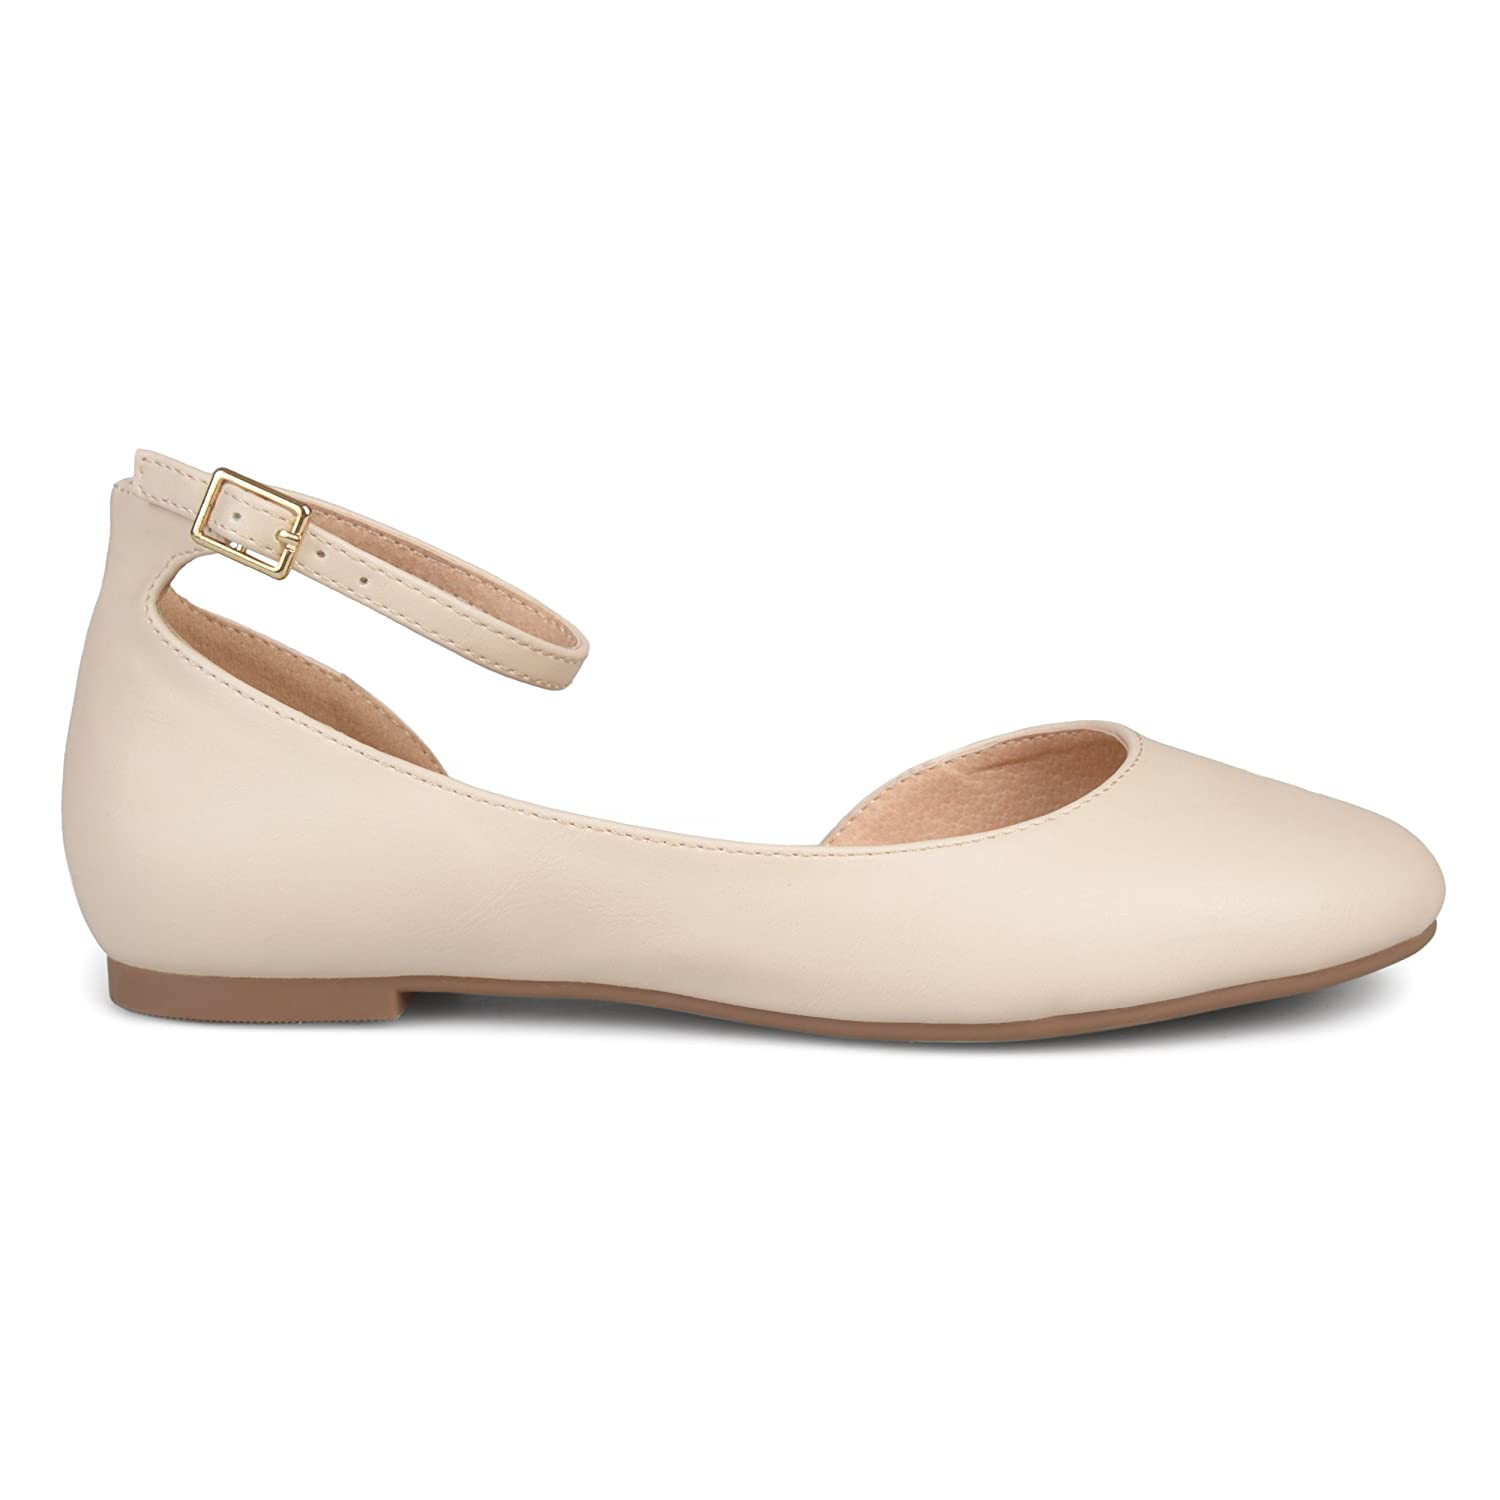 Brinley Co Womens ARO Faux Leather Wide Width Ankle Strap Round Toe D'Orsay Flats B074WG3FF4 11 B(M) US Ivory